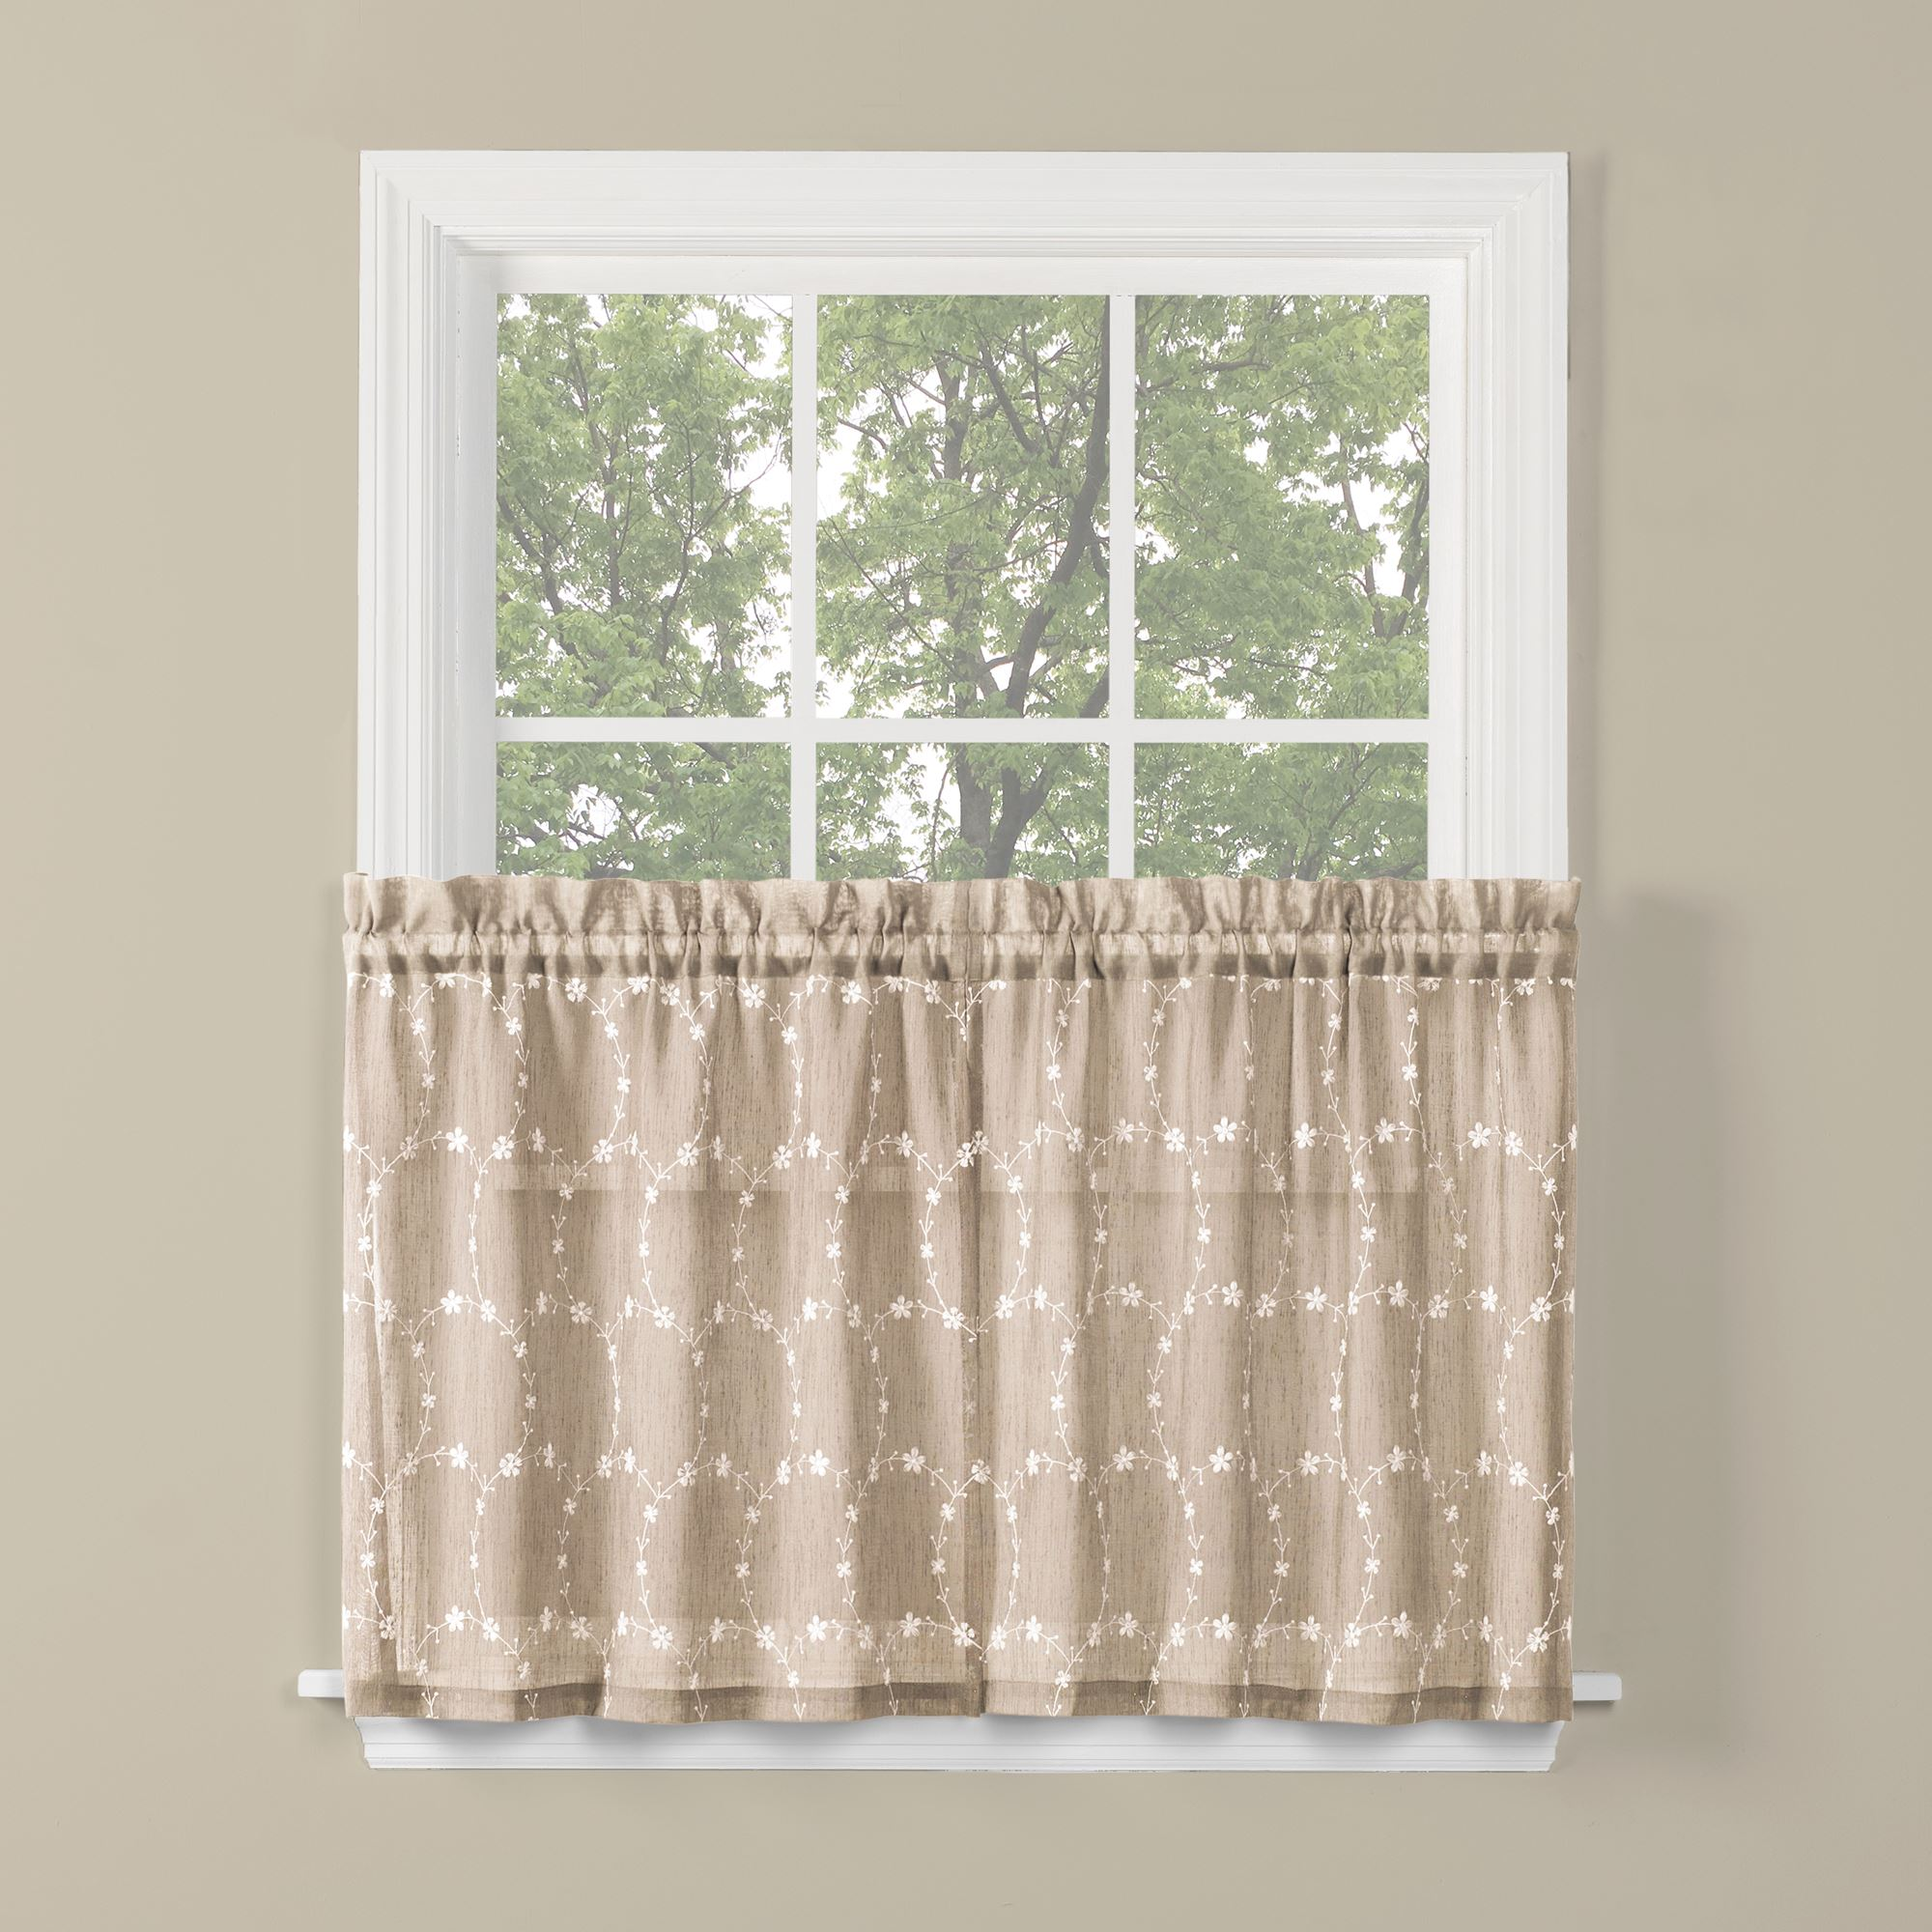 Saturday Knight Ltd Briarwood Collection High Quality Stylish Delicate & Filmy Window Tiers & Valance